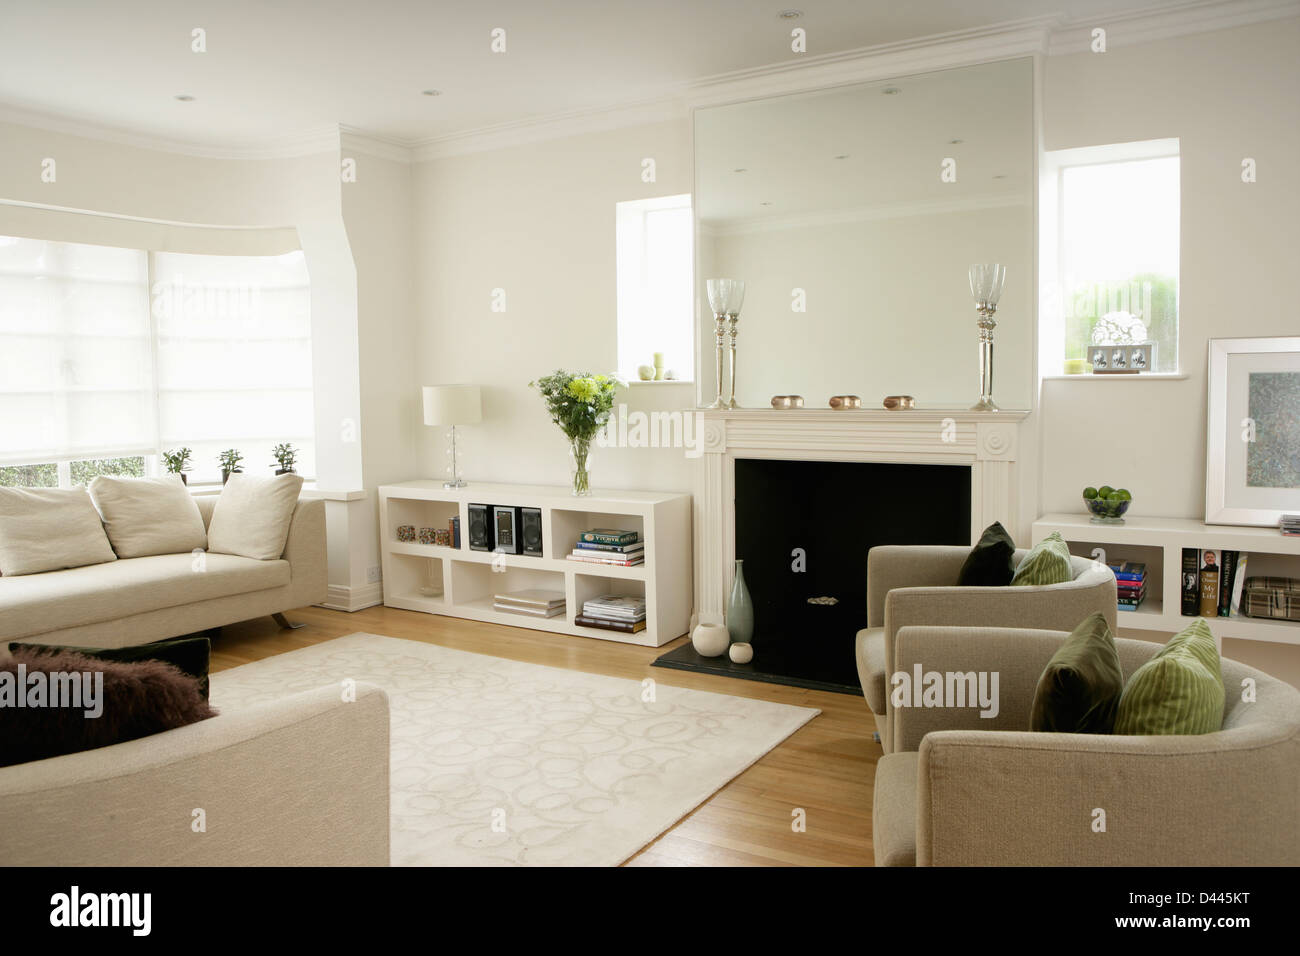 Low White Shelf Unit Beside Fireplace In Modern White Living Room Stock Photo Royalty Free